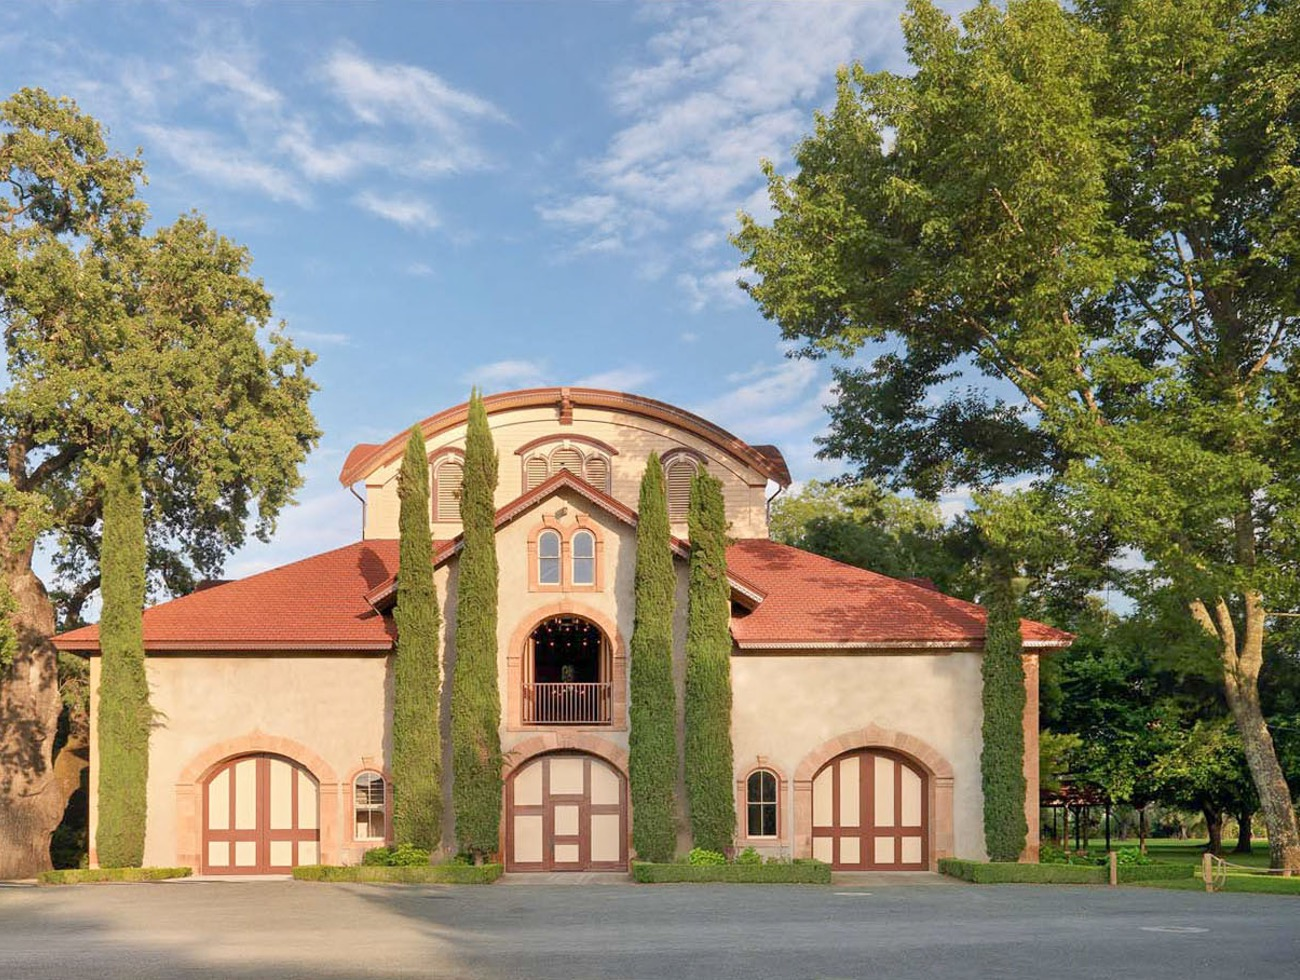 Charles Krug Winery in Napa Valley